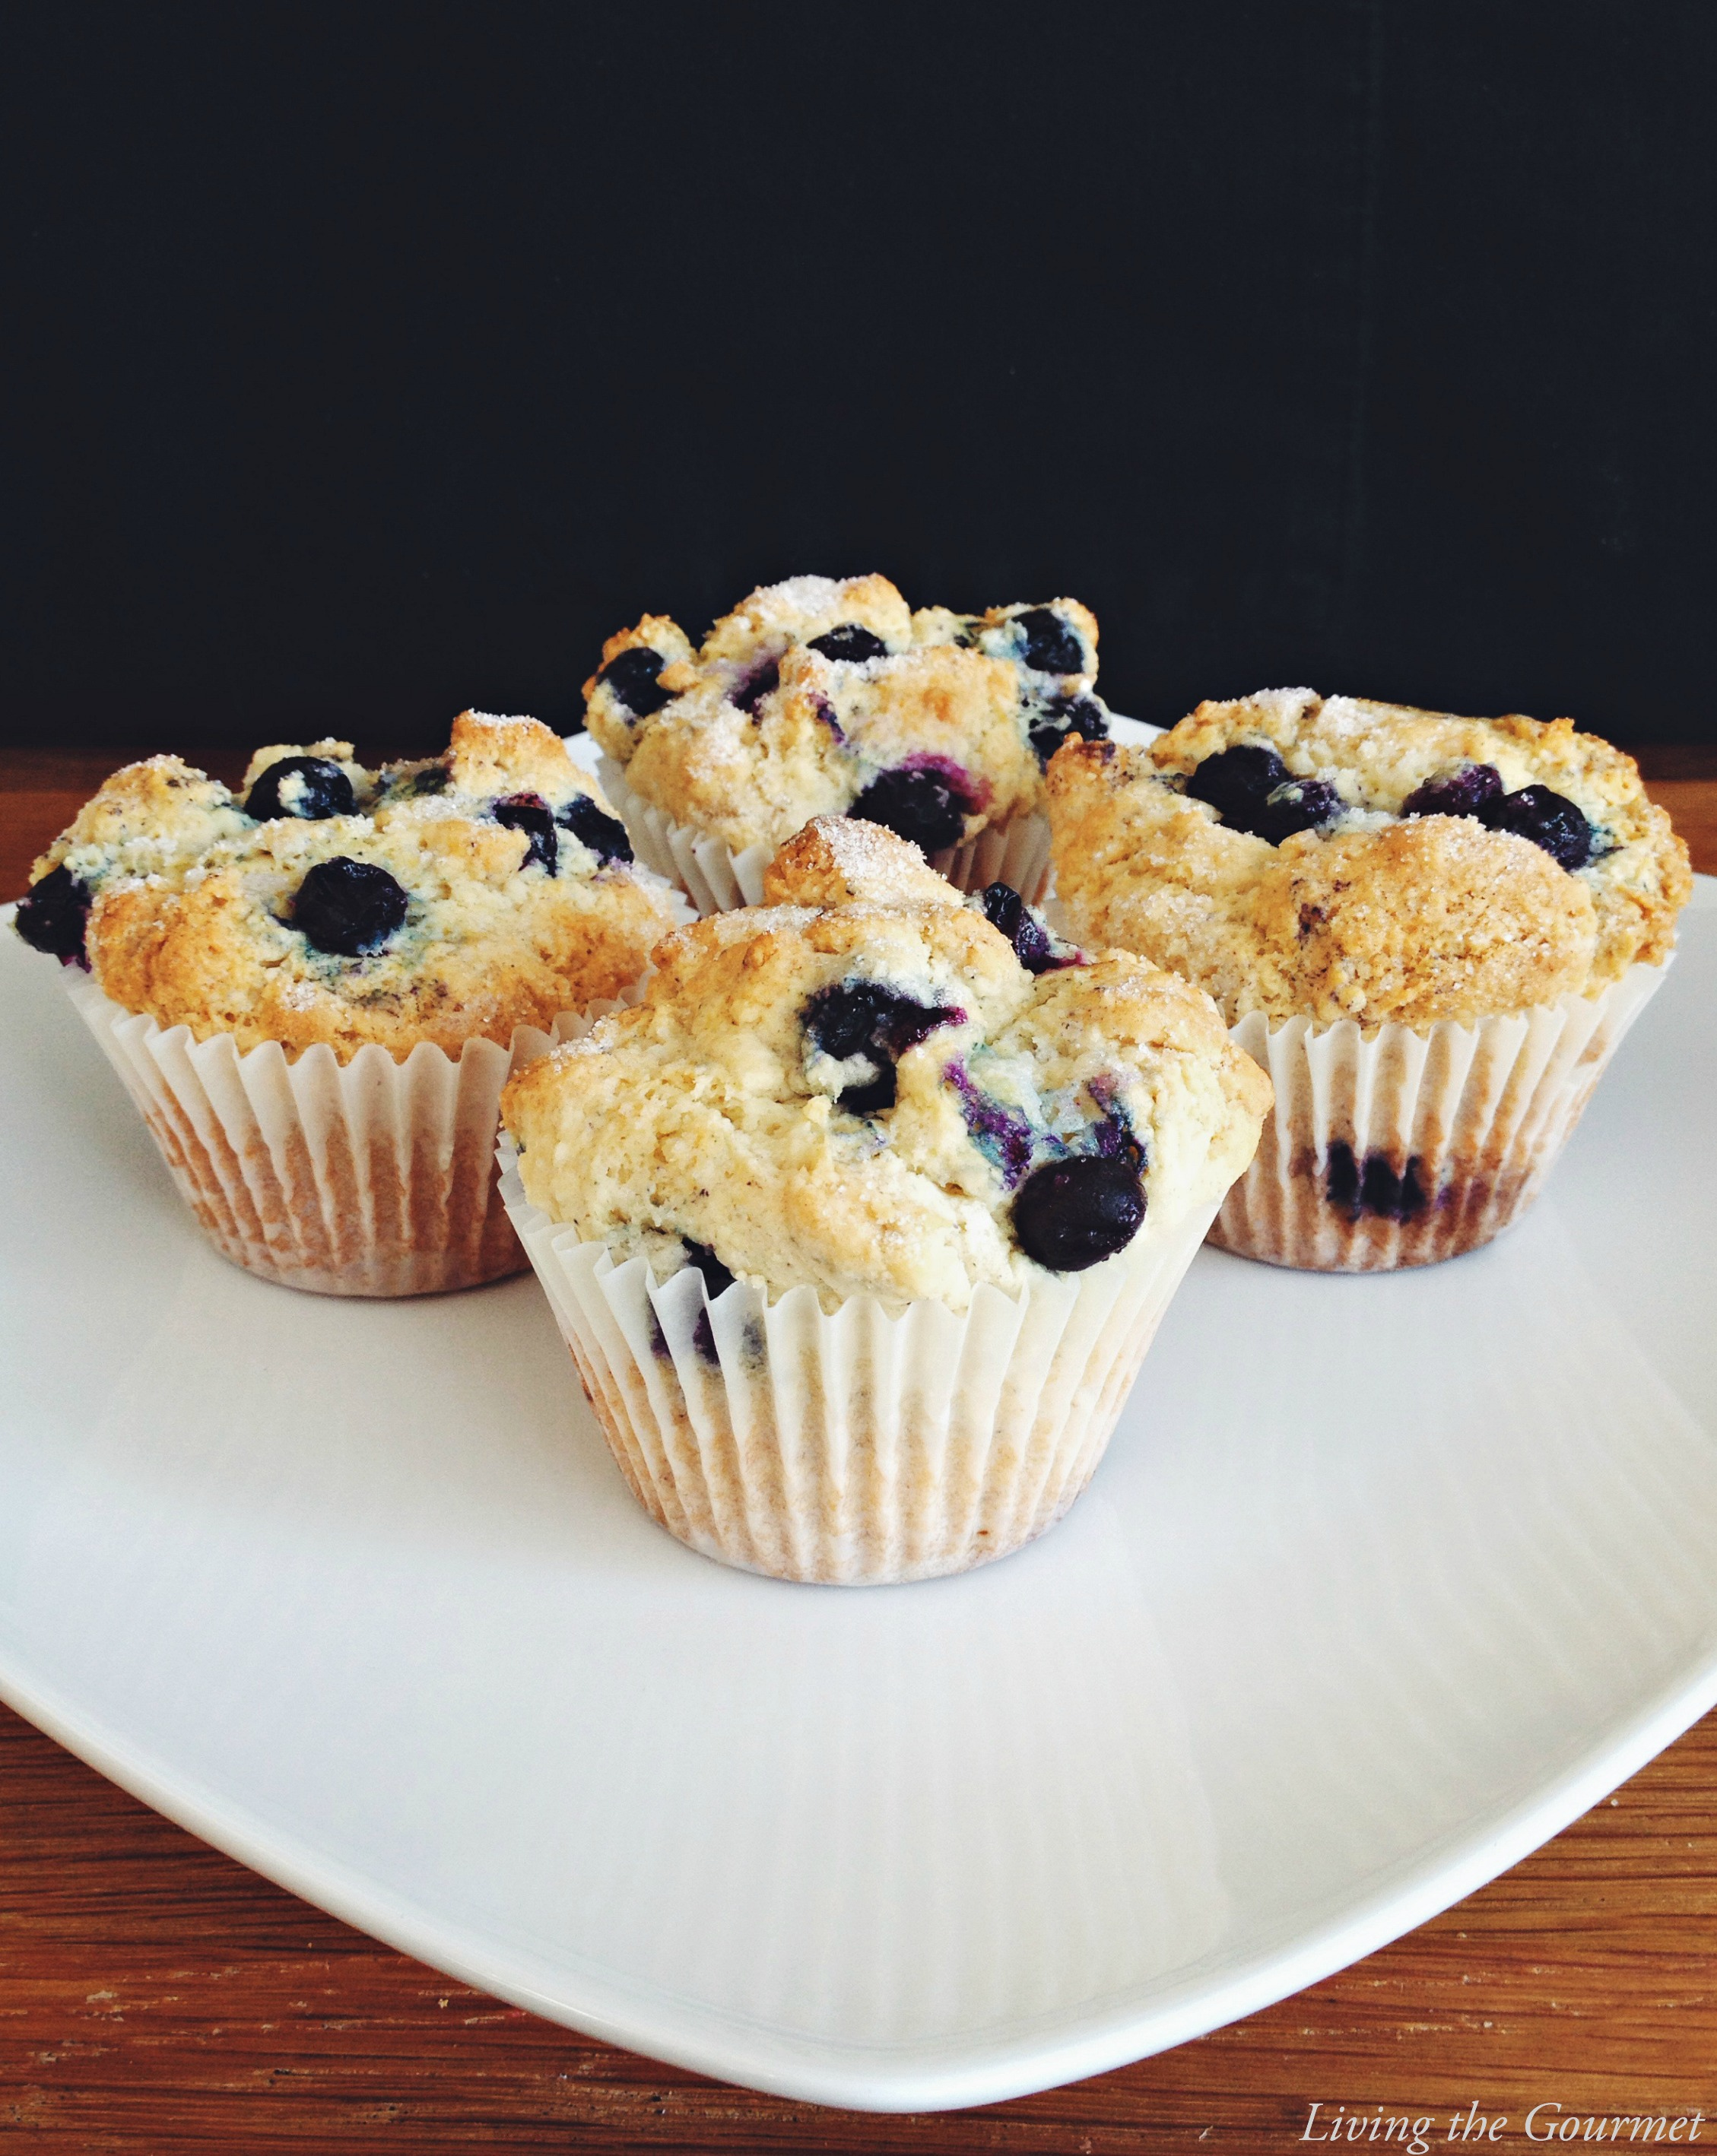 Living the Gourmet: Easy Blueberry Muffins